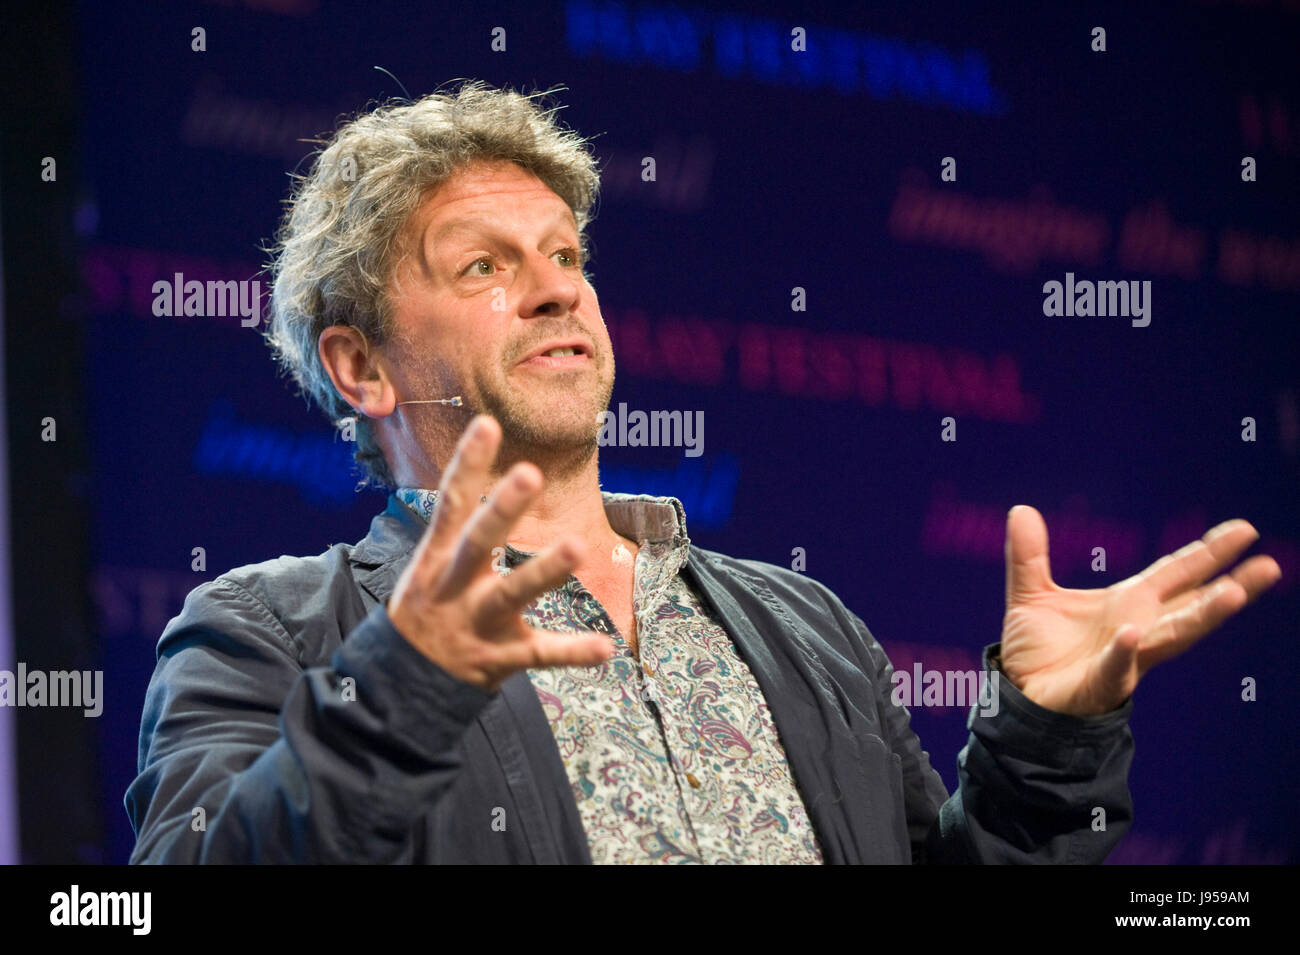 Volcanologist David M Pyle Professor of Earth Sciences at University of Oxford speaking on stage at Hay Festival - Stock Image